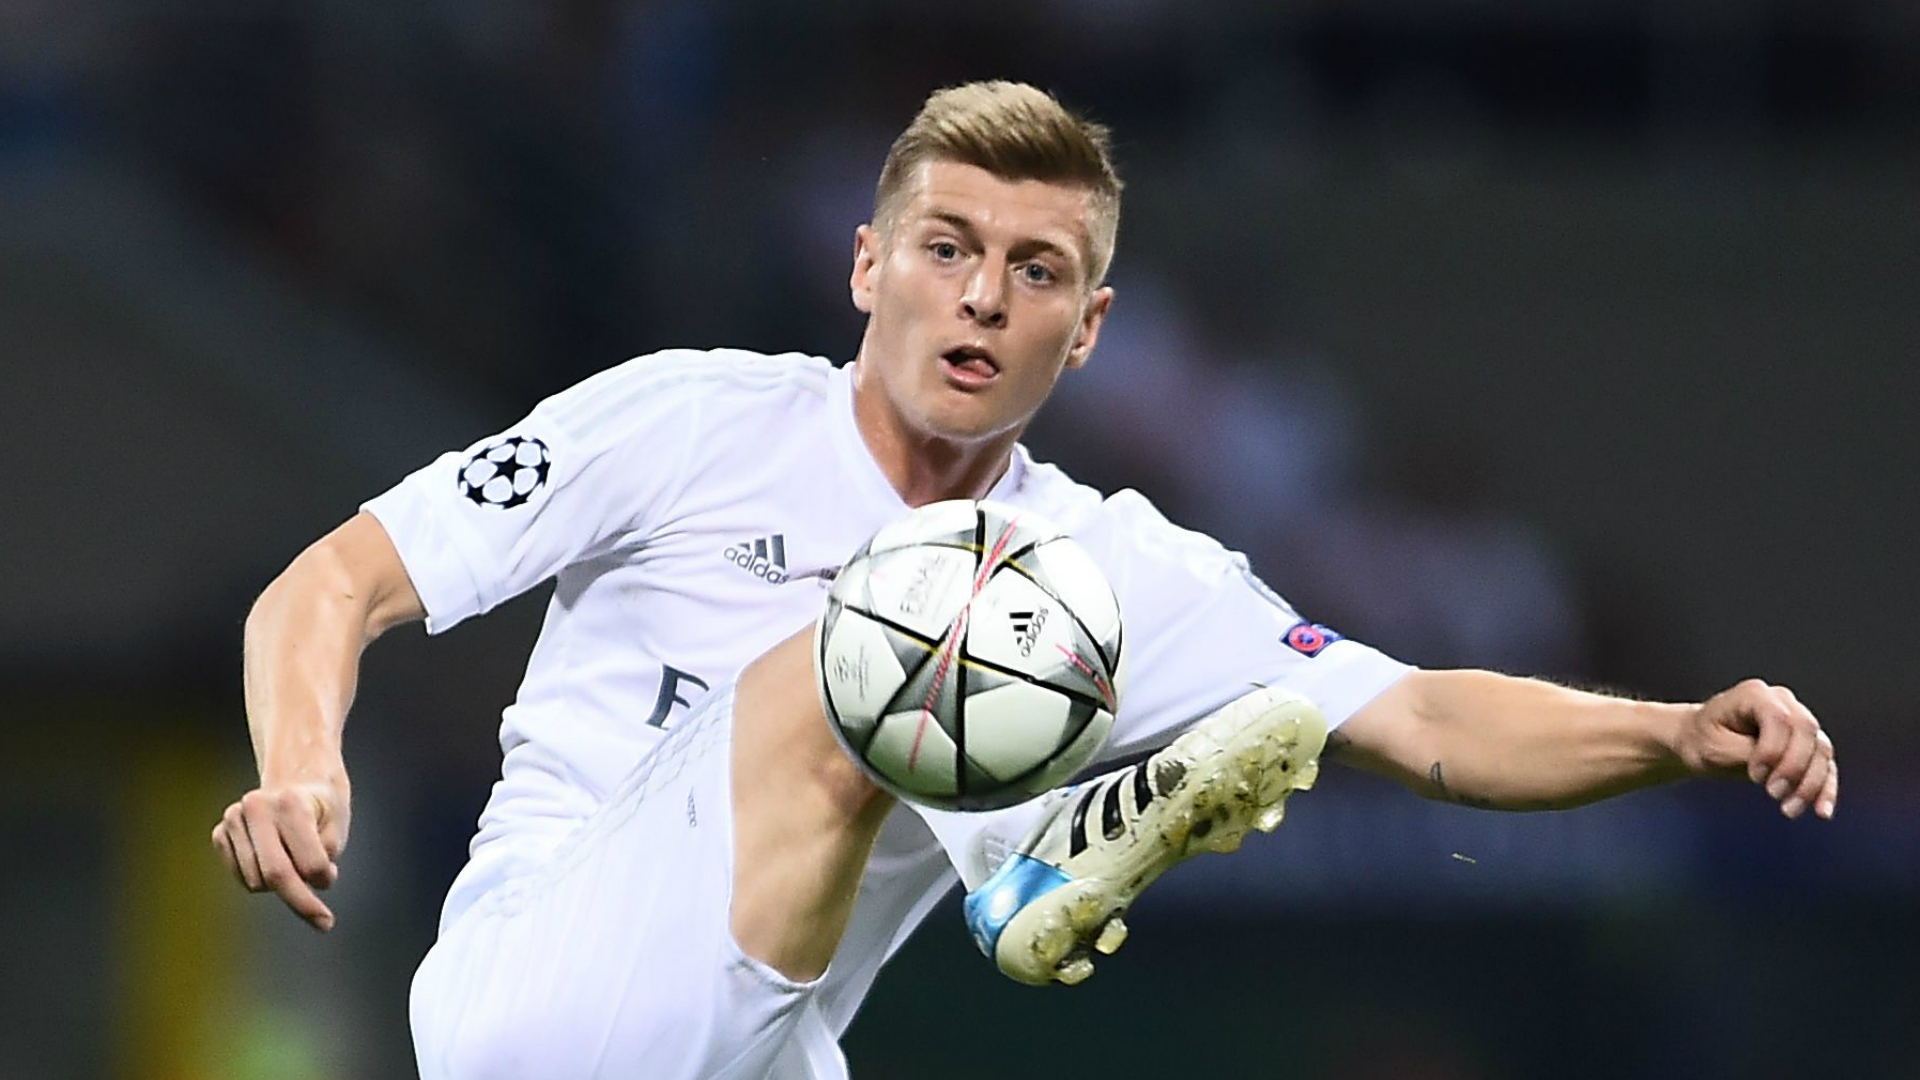 UCL FINAL REAL MADRID ATLETICO TONI KROOS 28052016